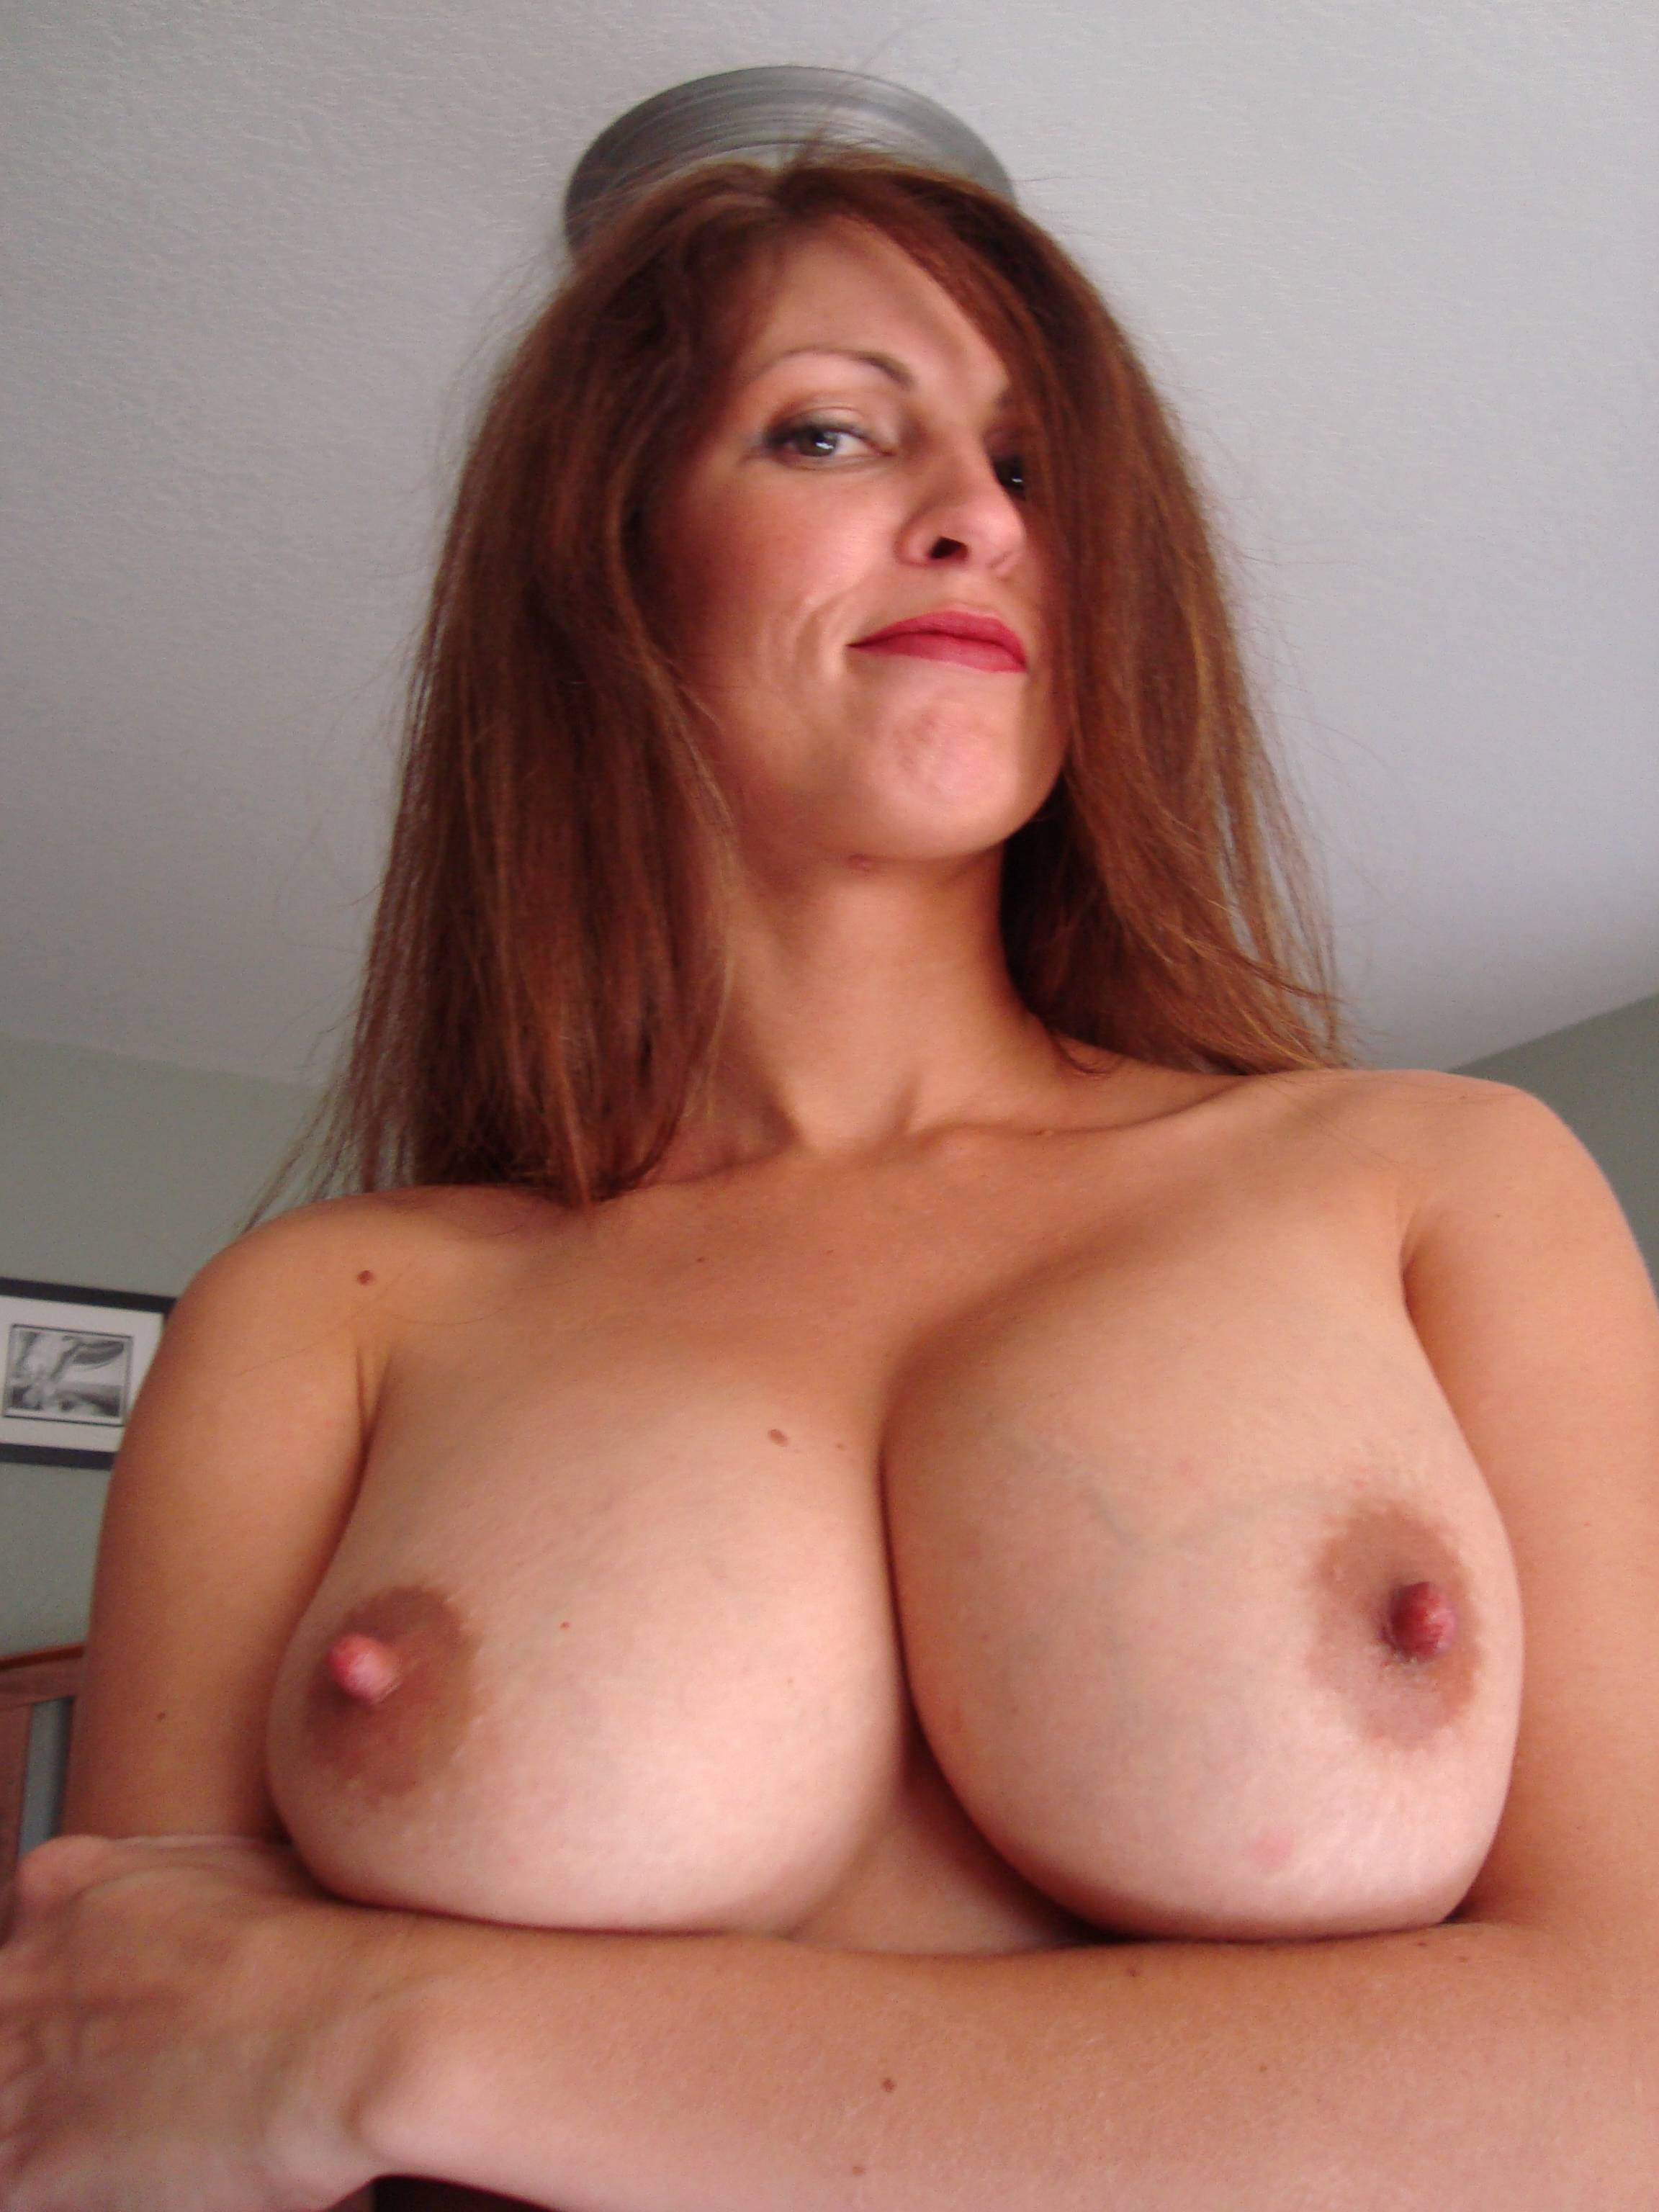 amateur natural breasts nude - wakeup blowjob - large sex archive 2018